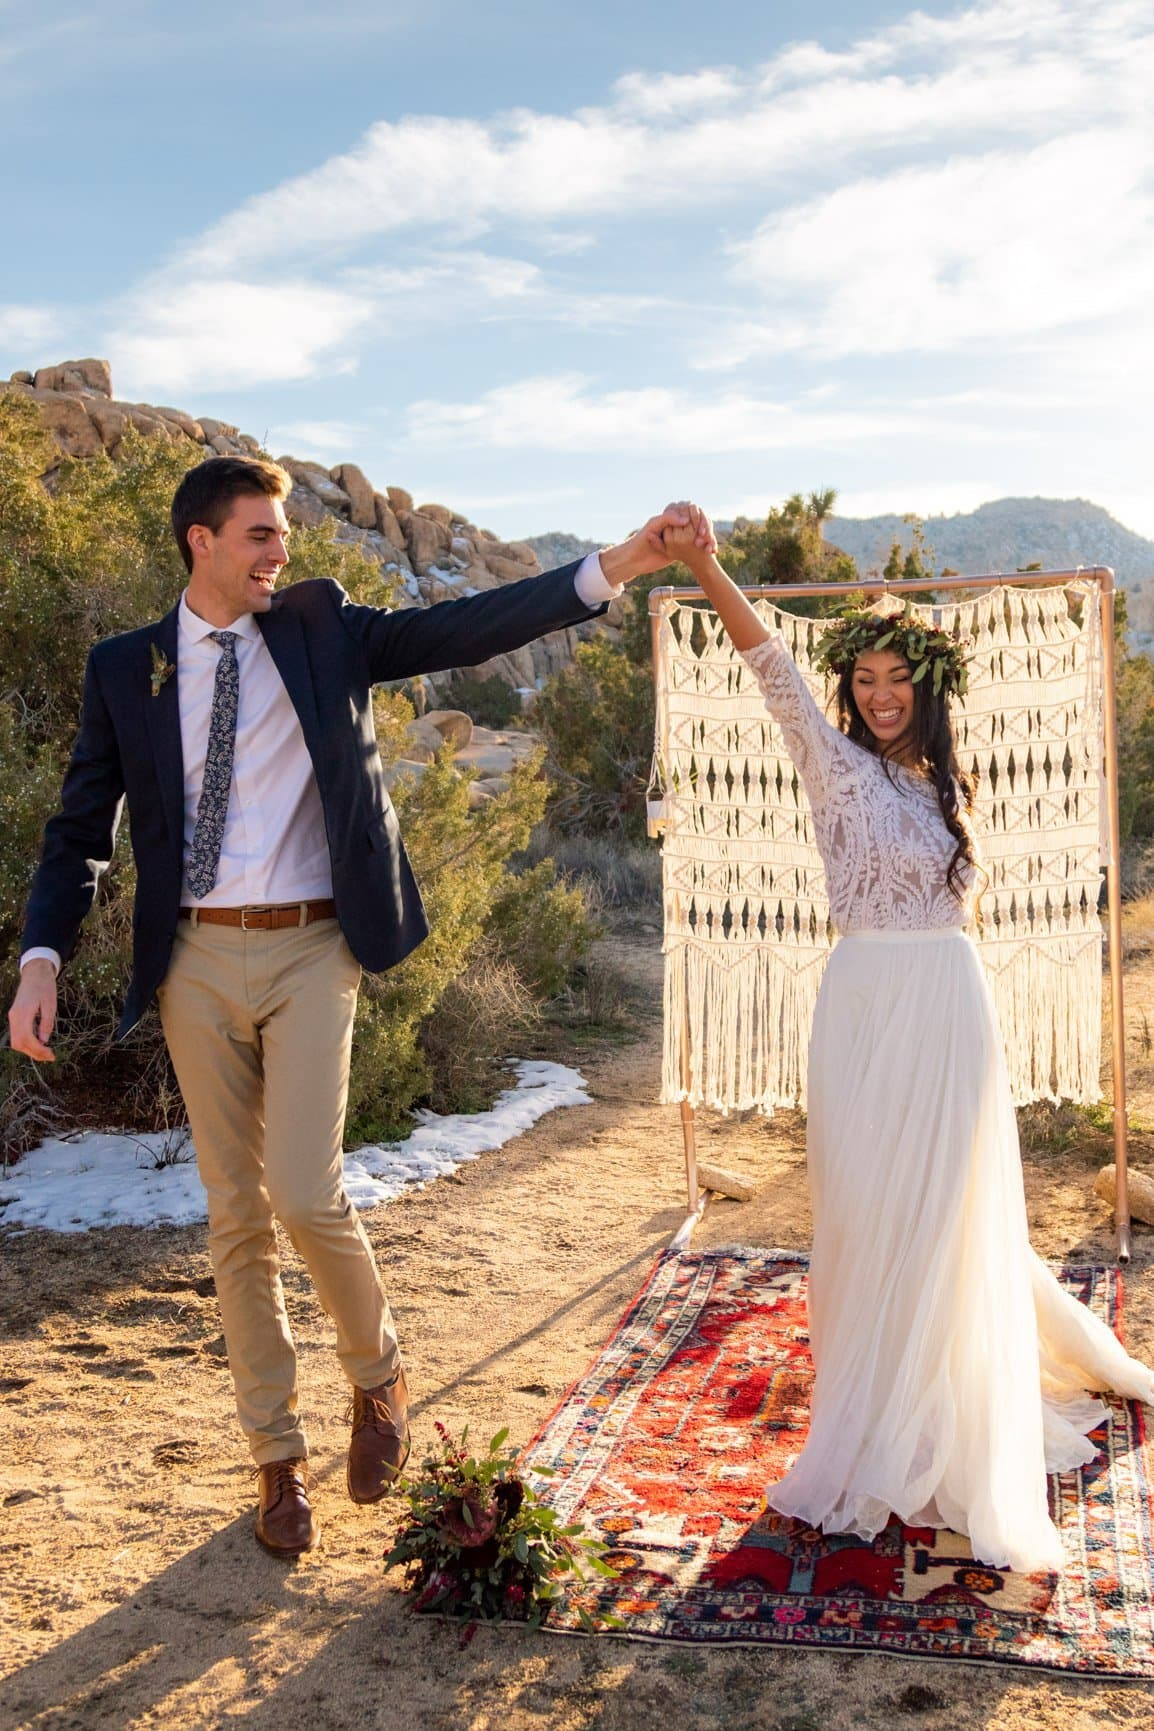 dancing after getting married in joshua tree national park